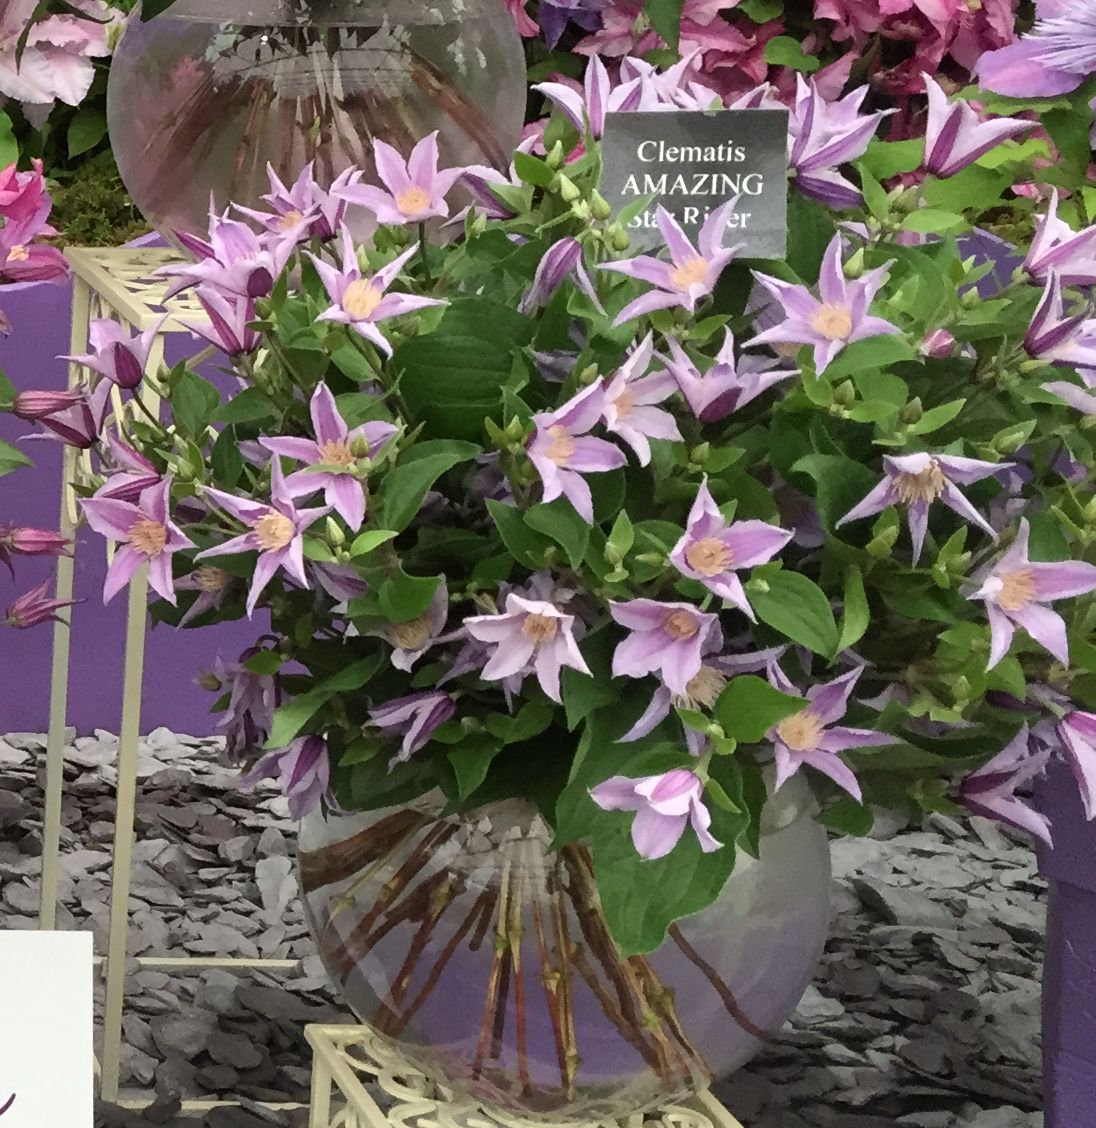 Clematis star river at chelsea as cut flower